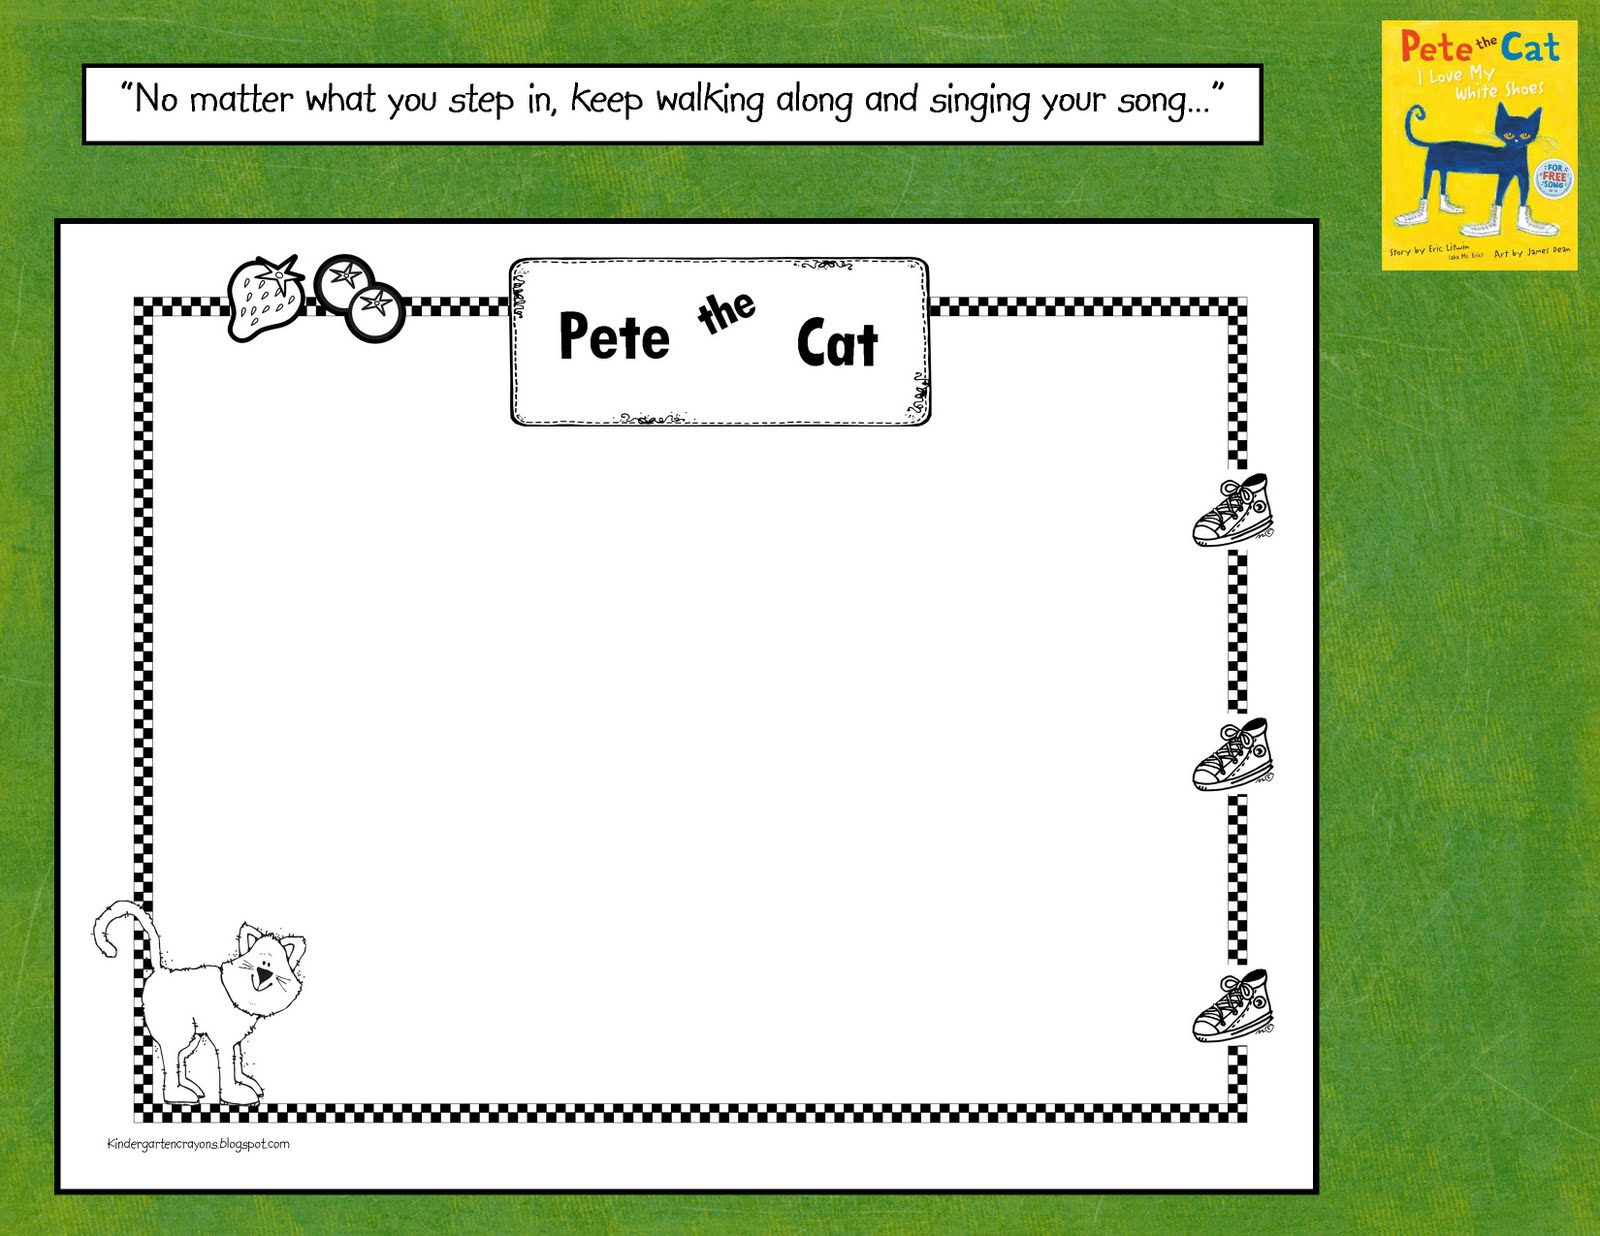 Kindergarten Crayons Pete The Cat Ep Walking Along